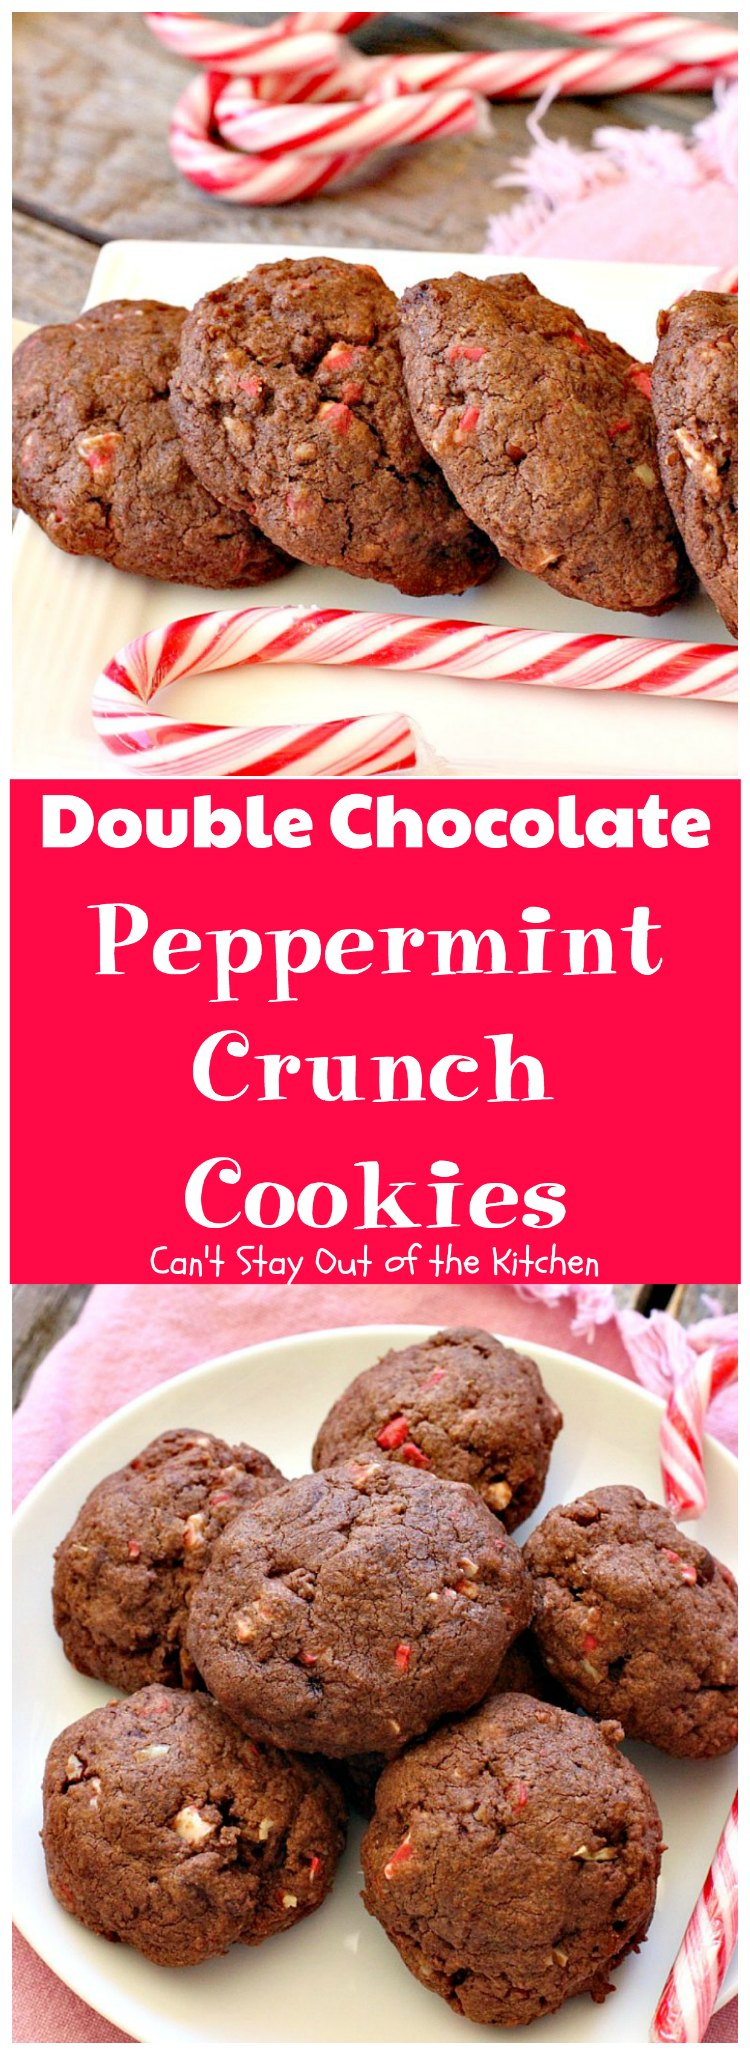 Double Chocolate Peppermint Crunch Cookies are great cookies for ...